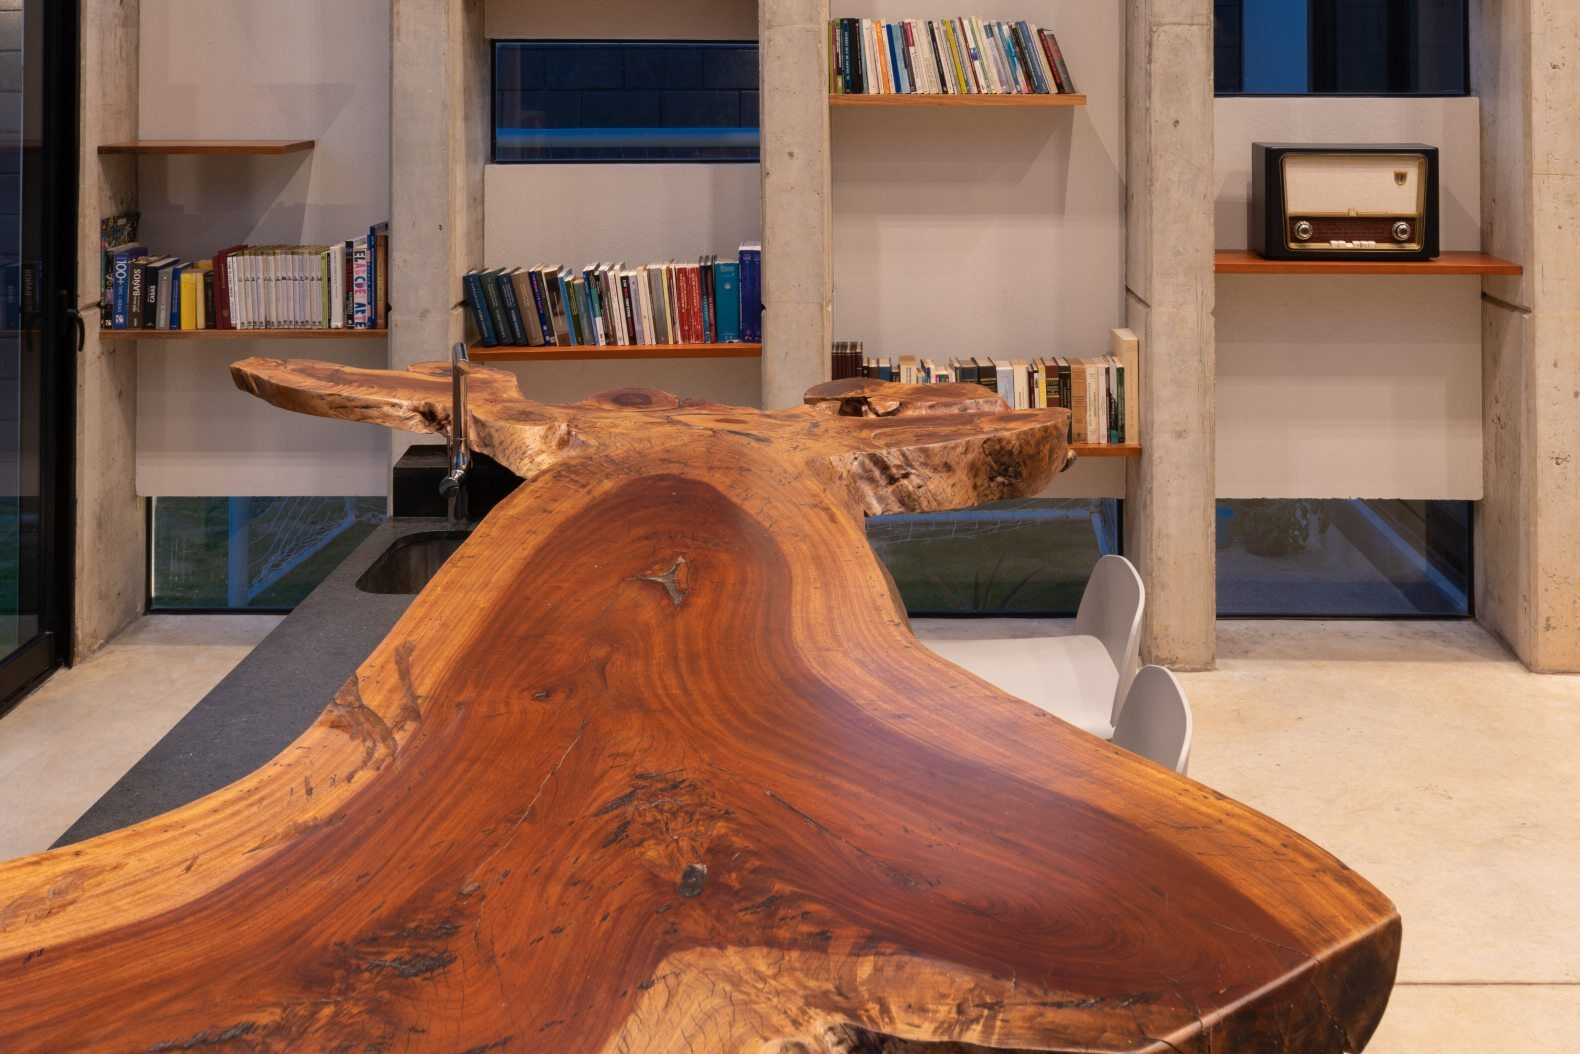 large live edge wood table with bookshelves in the background